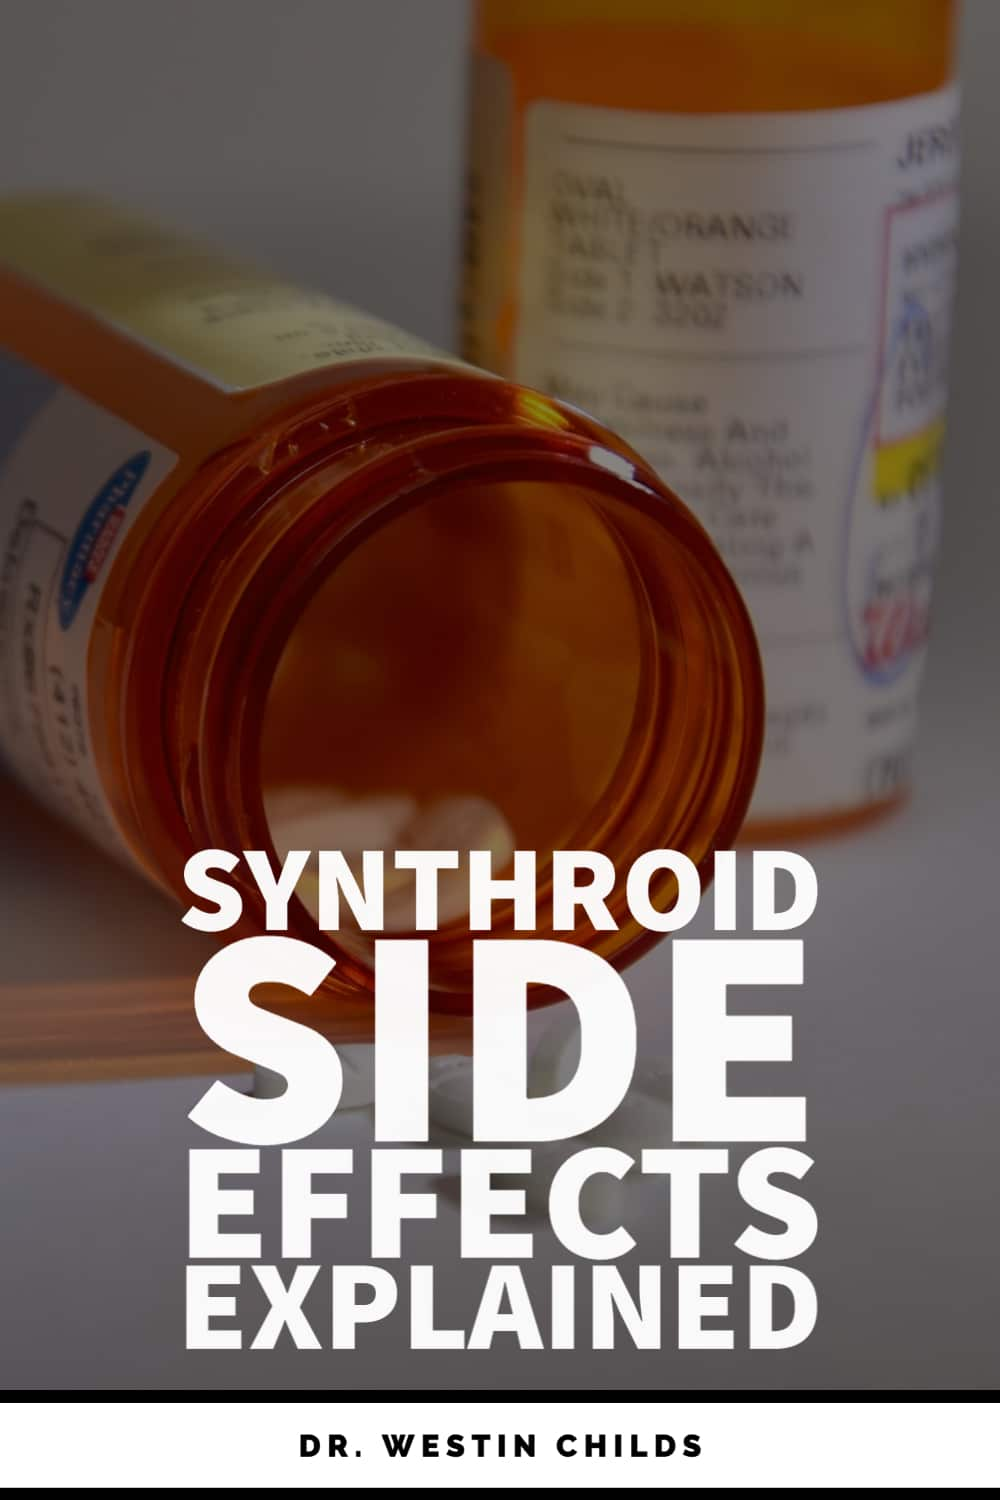 3 main reasons for side effects from synthroid